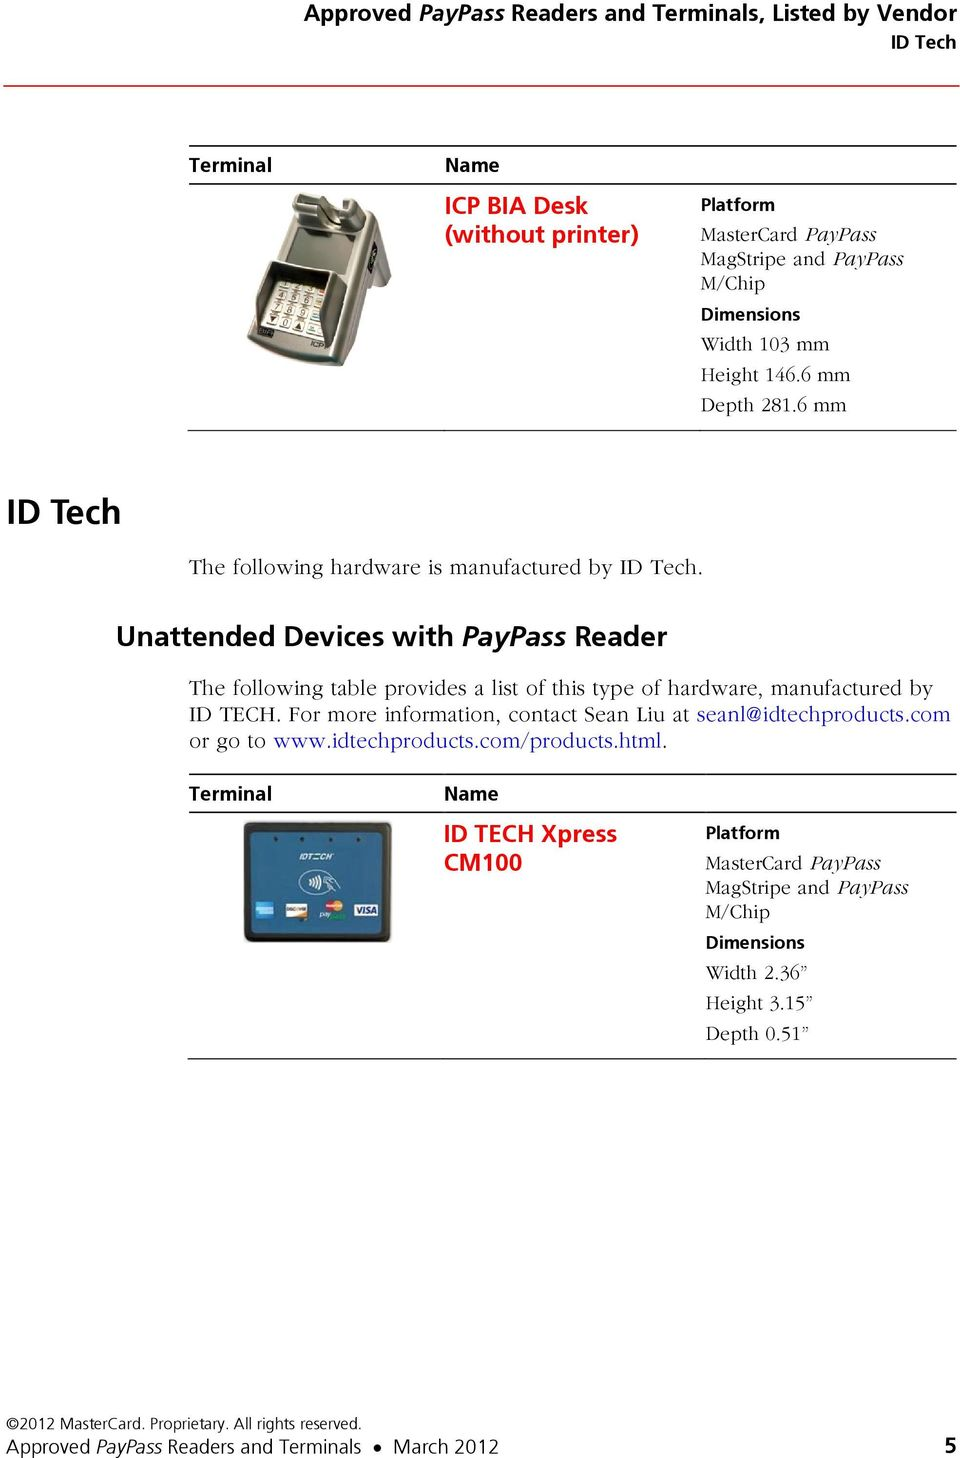 Unattended Devices with PayPass Reader ID TECH. For more information, contact Sean Liu at seanl@idtechproducts.